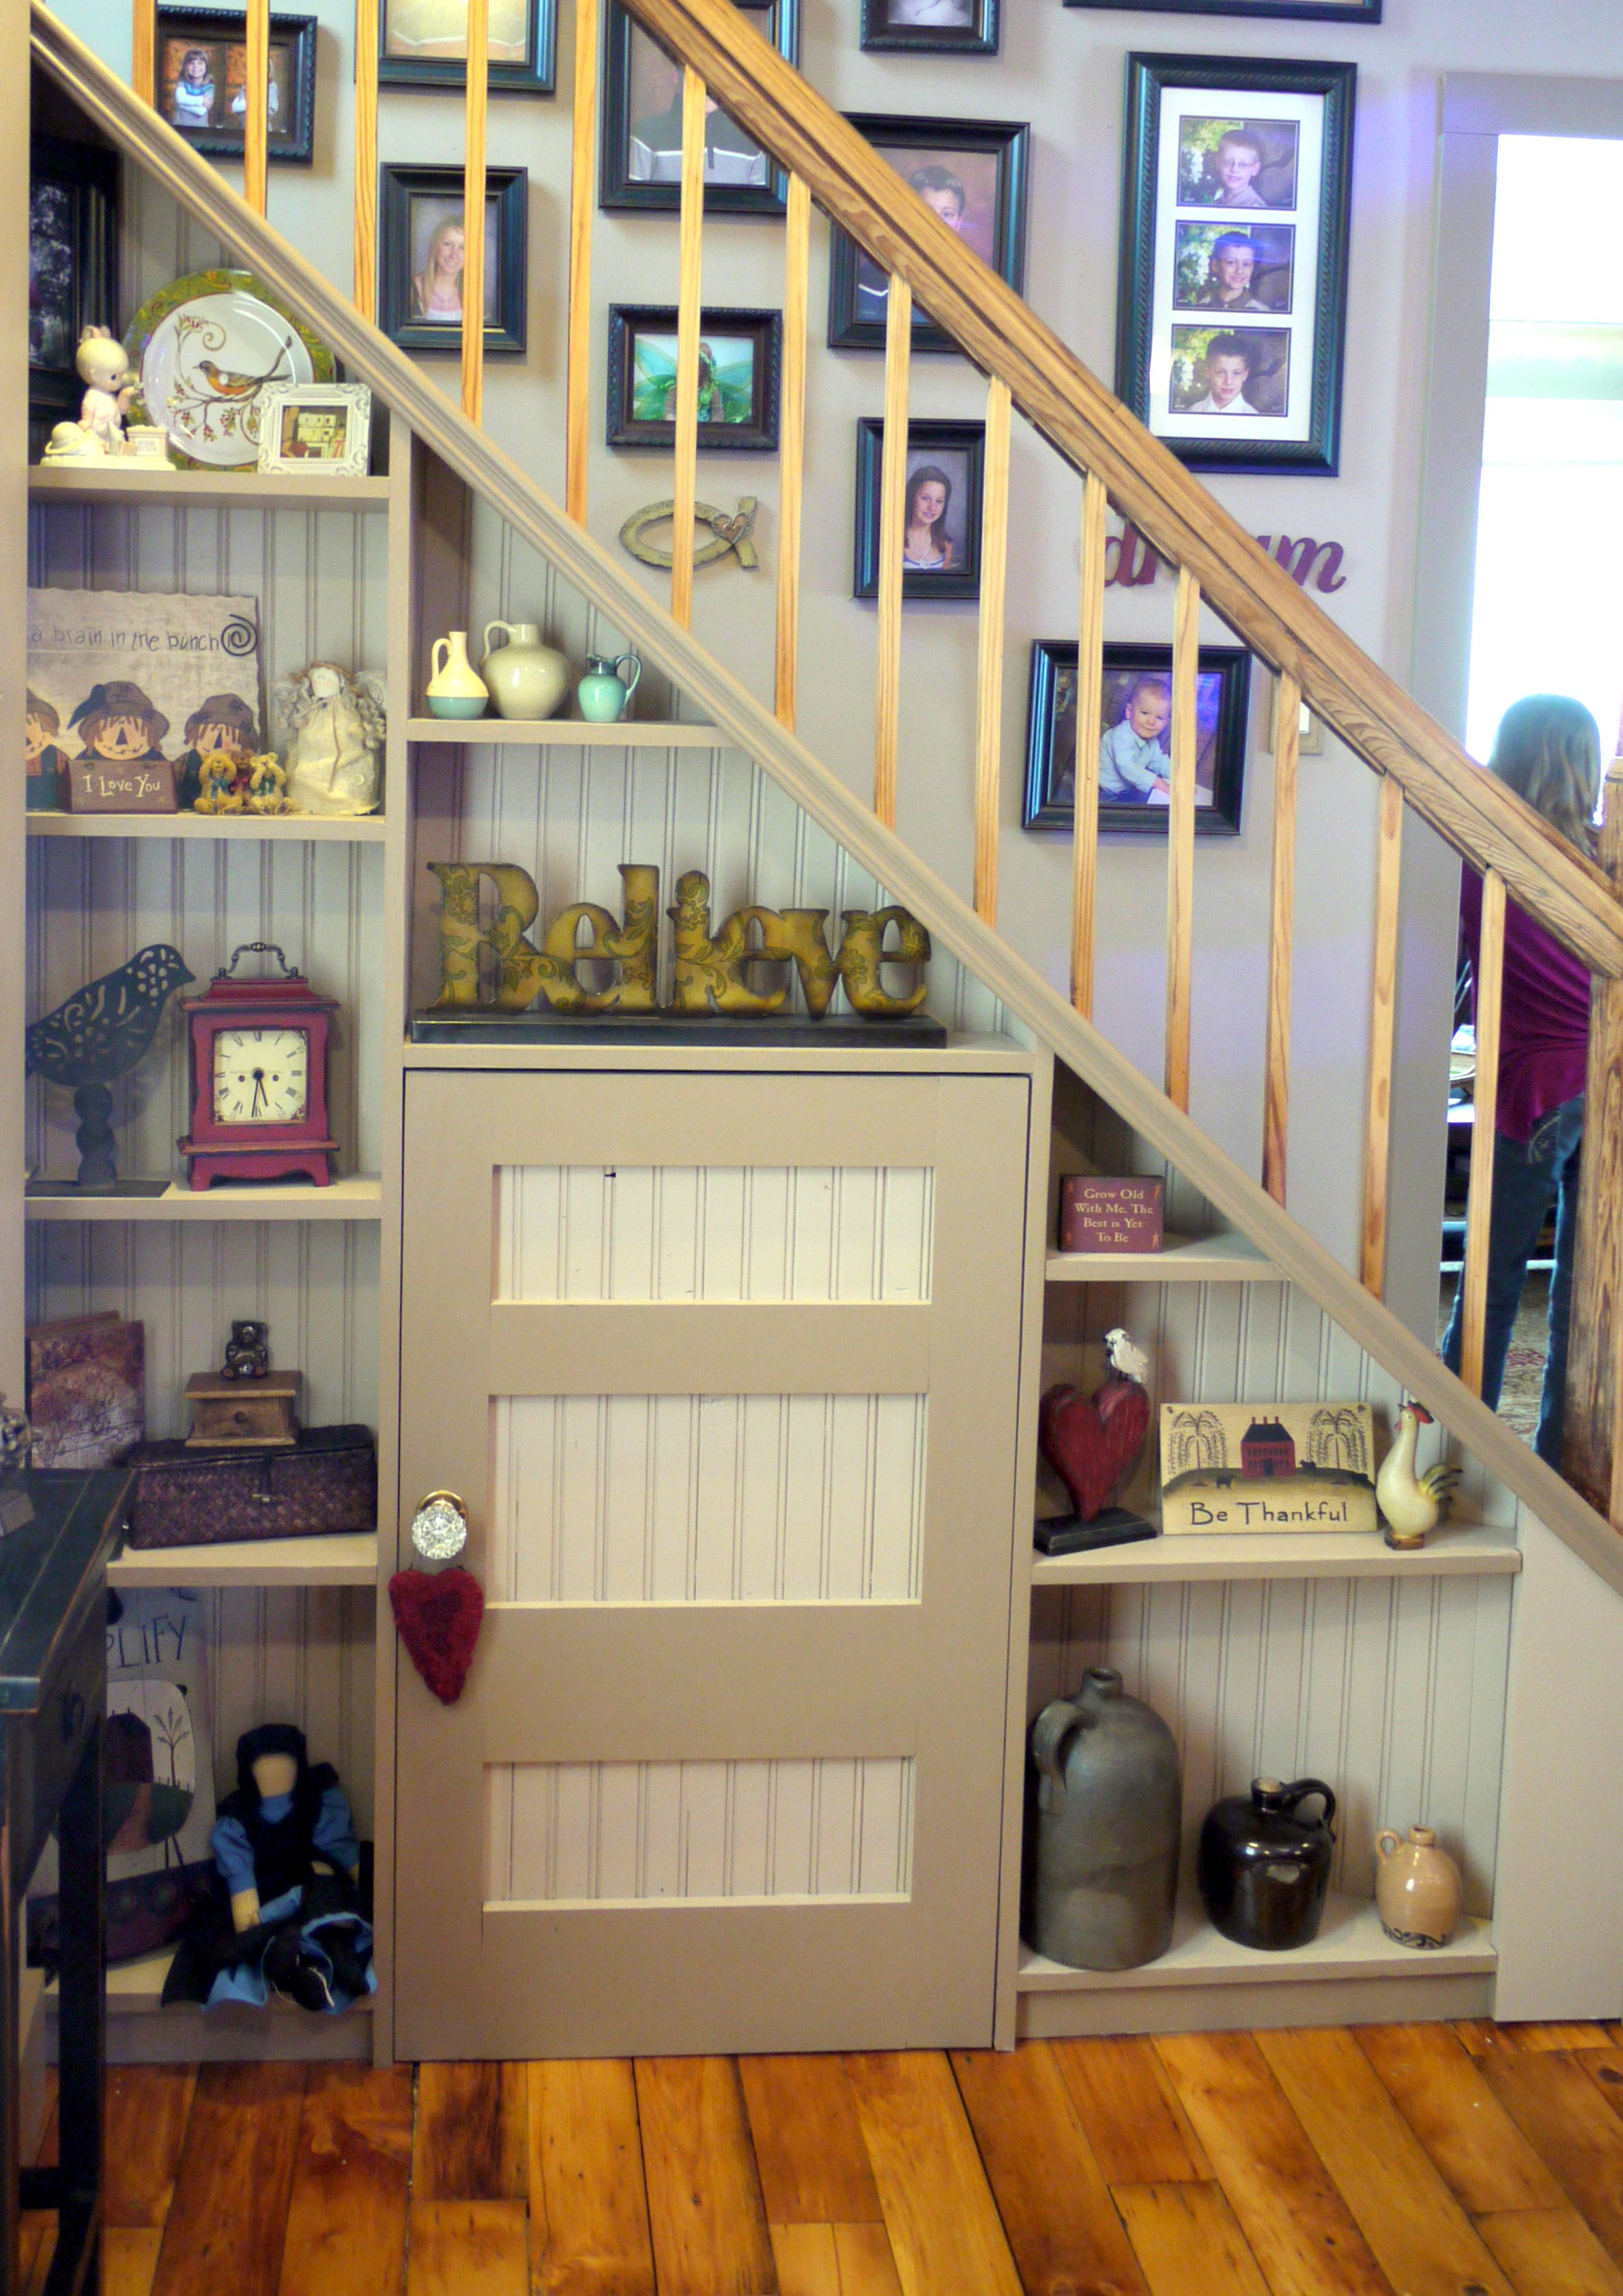 Stairs Shelving Shelves And Door For Access Under Stairs Decorating